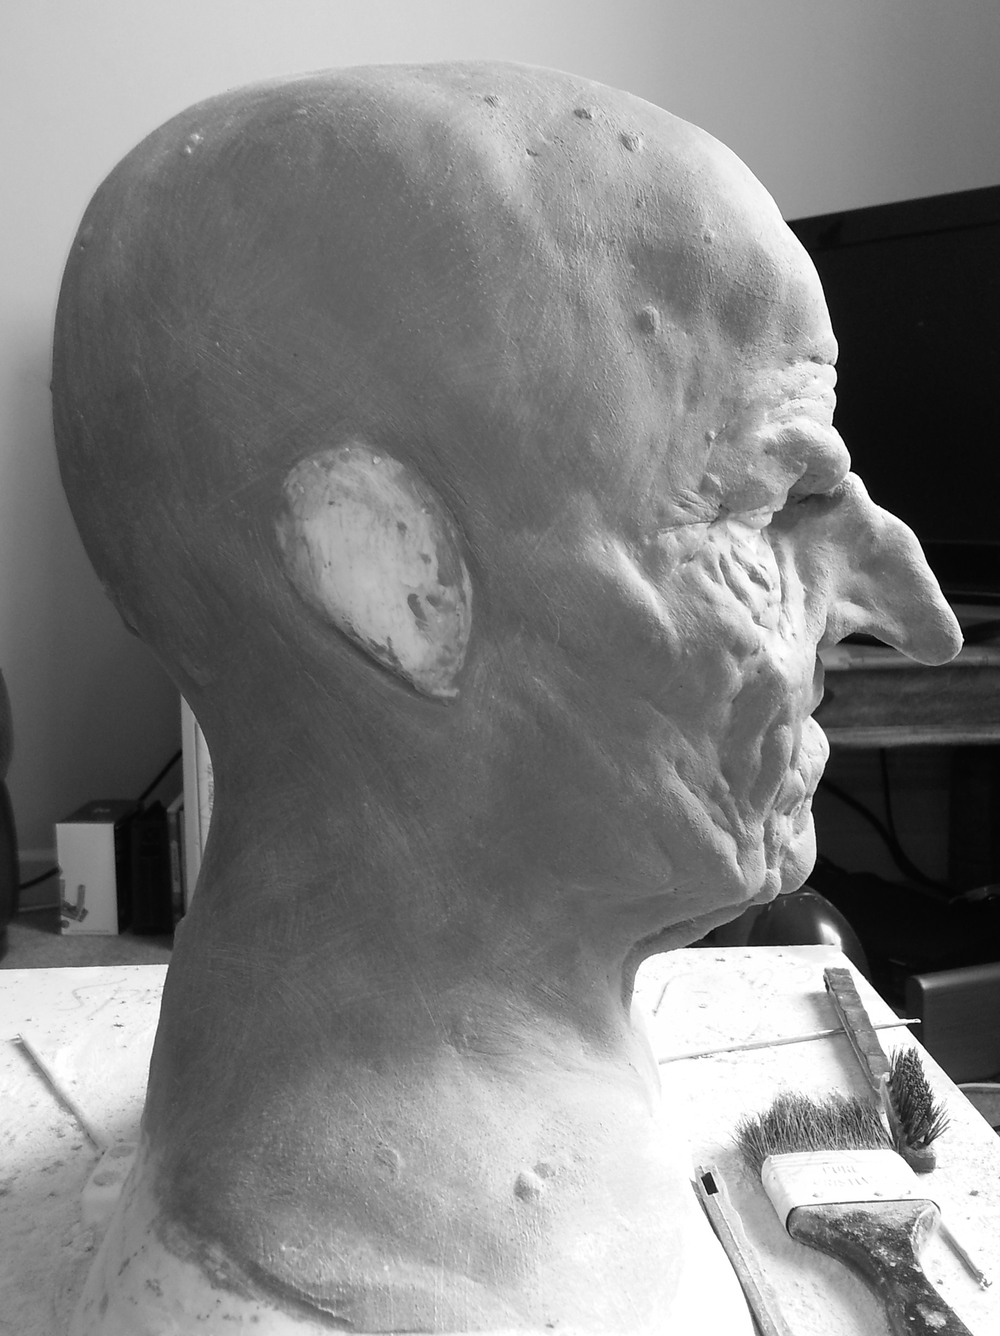 Full Head Prosthetic Sculpt in La Beau Touche